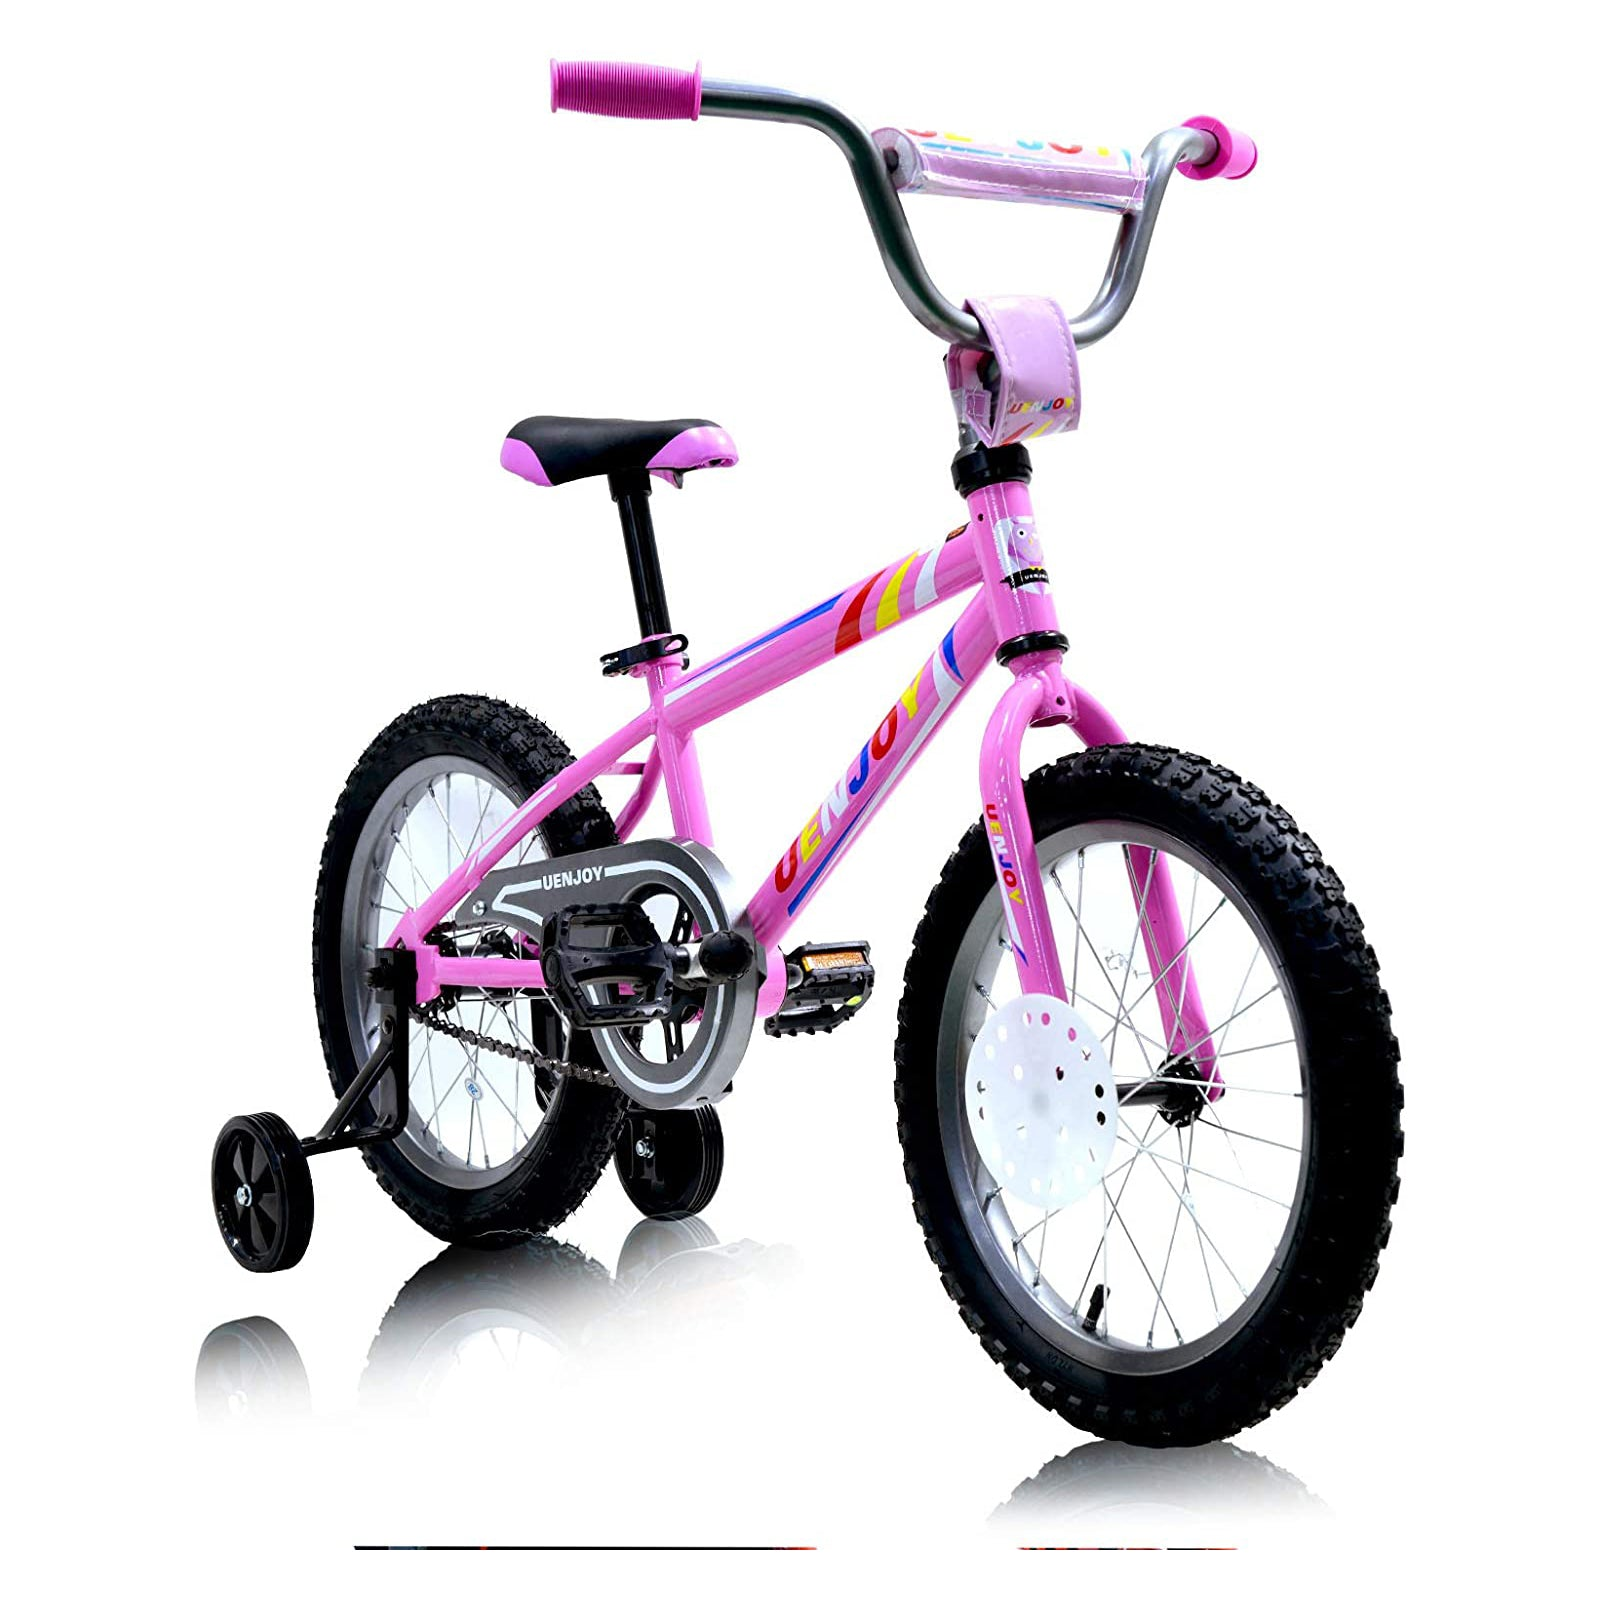 Uenjoy 18 inch  Kids Bike, with Kickstand Child's Bike, Boys Girls Bicycle, Easy to assemble